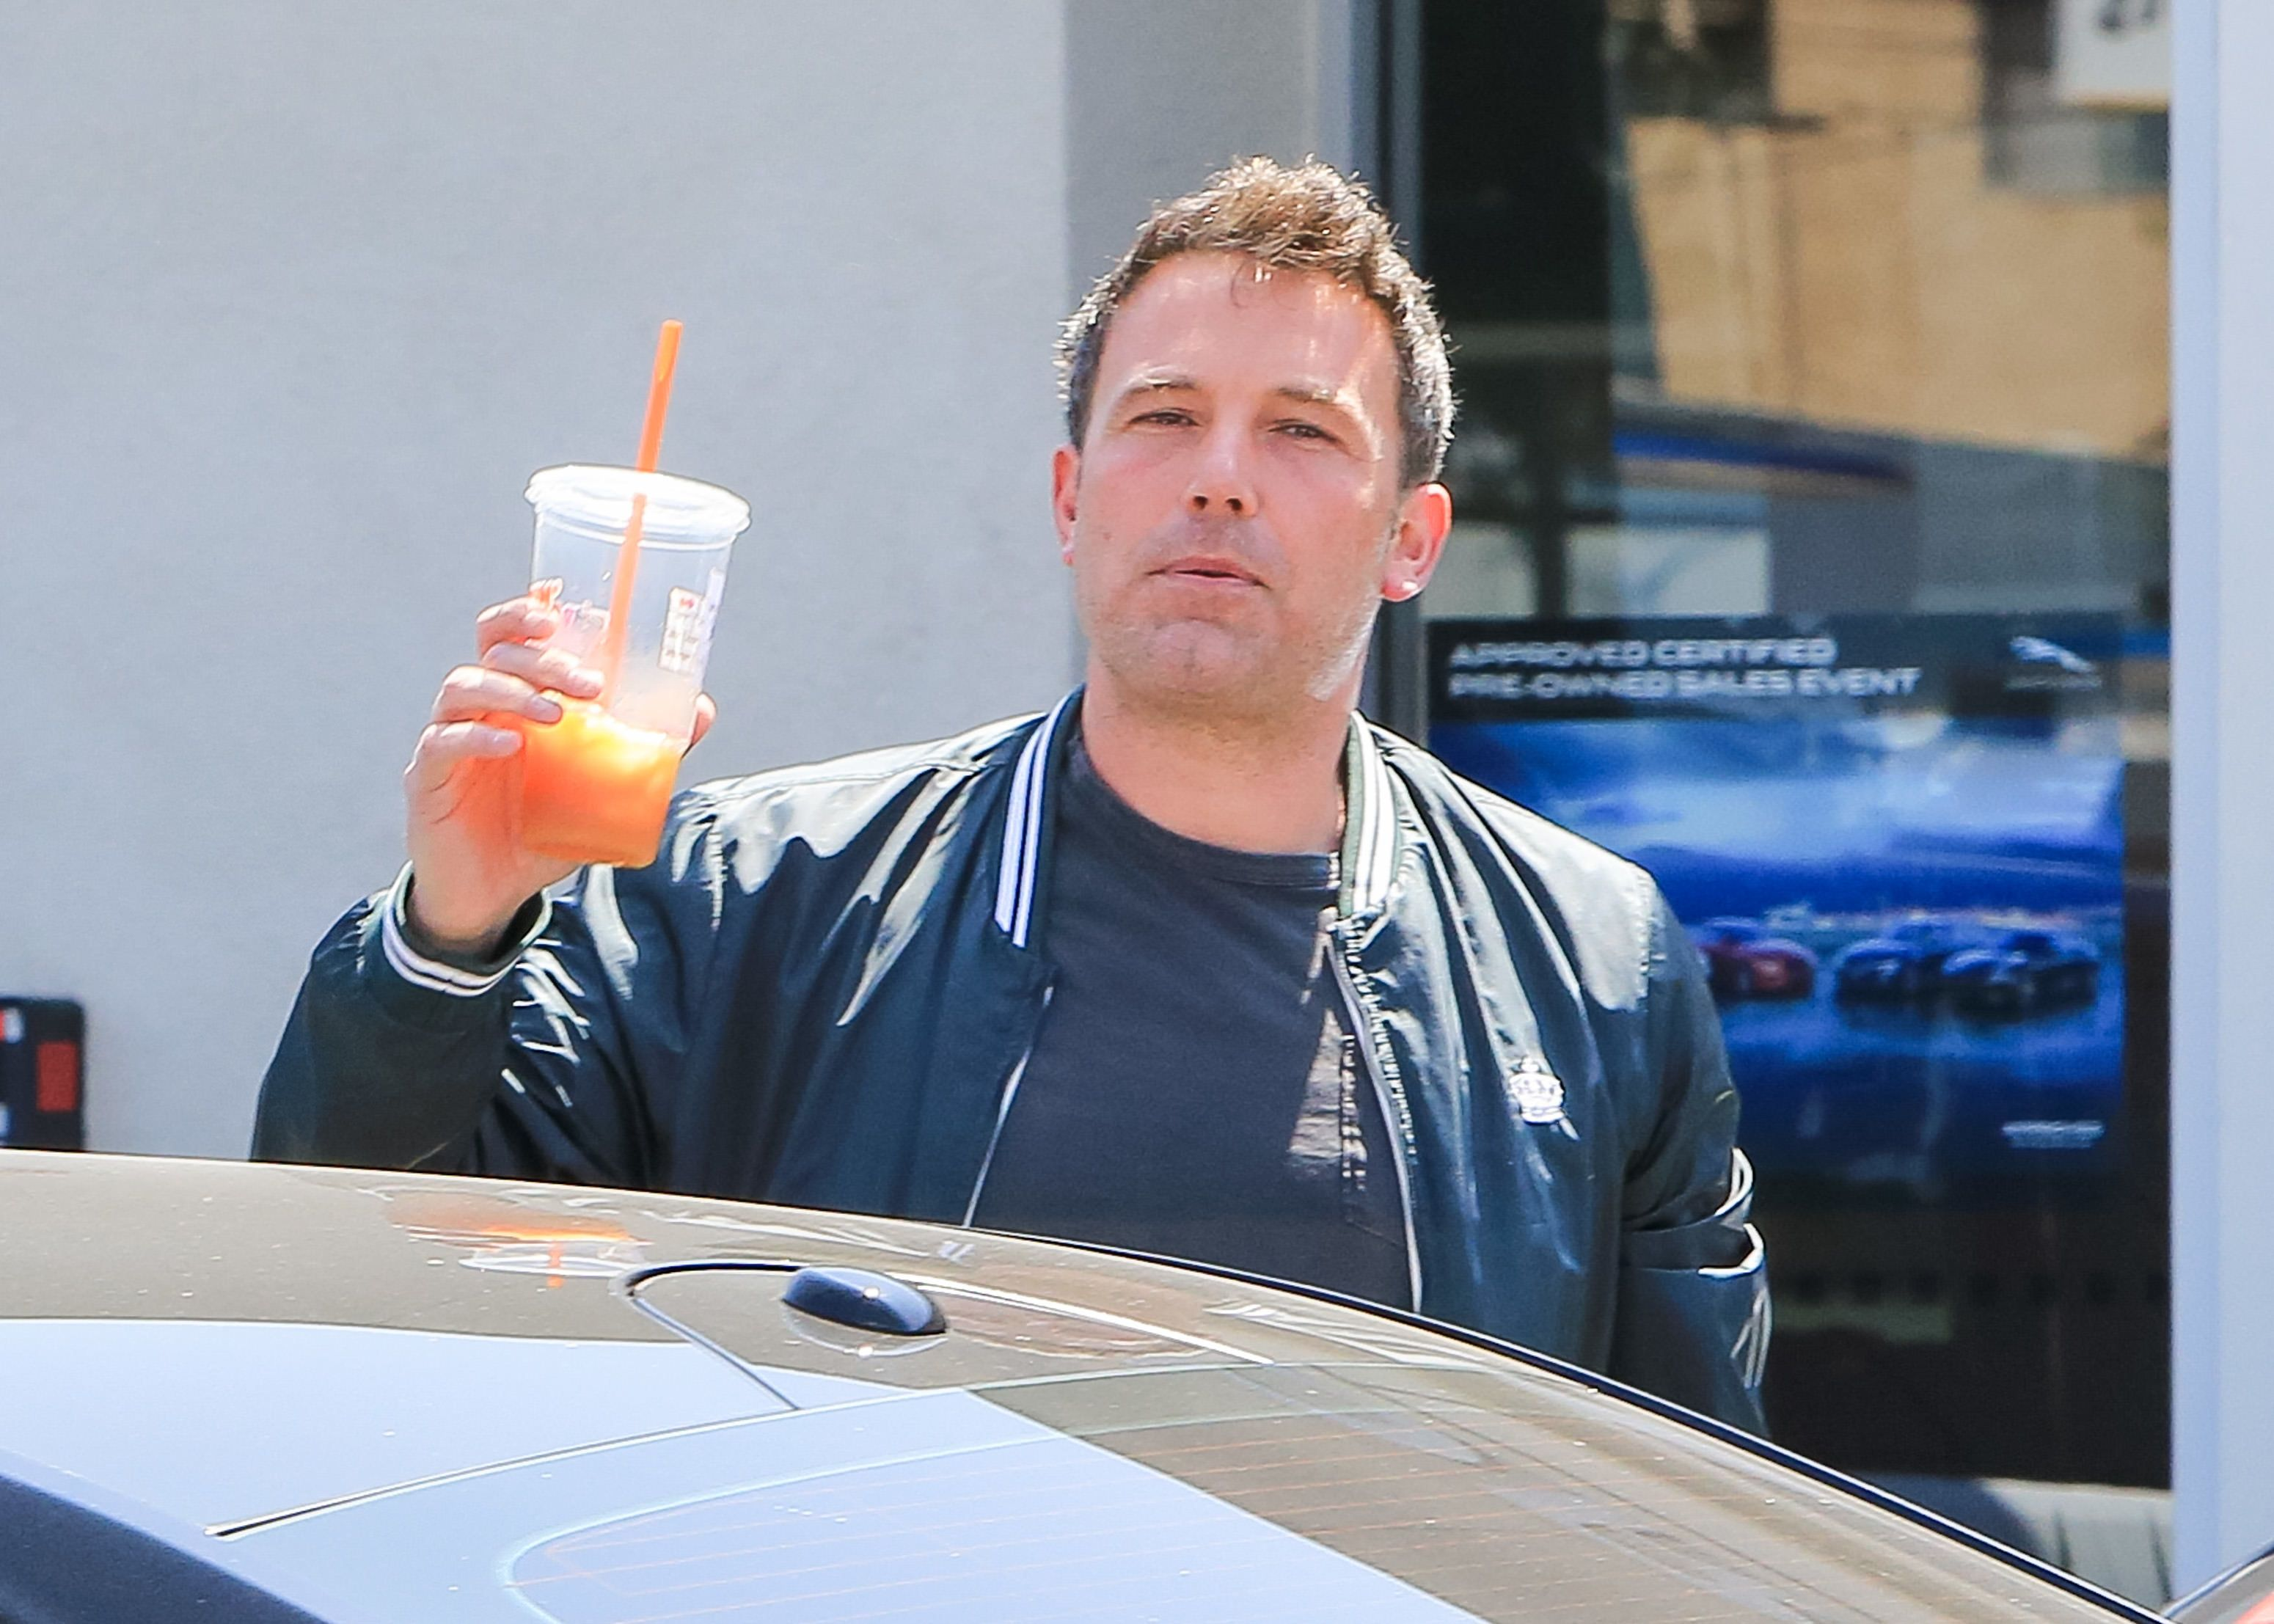 LOS ANGELES, CA - AUGUST 15: Ben Affleck is seen on August 15, 2018 in Los Angeles, California.  (Photo by BG004/Bauer-Griffin/GC Images)